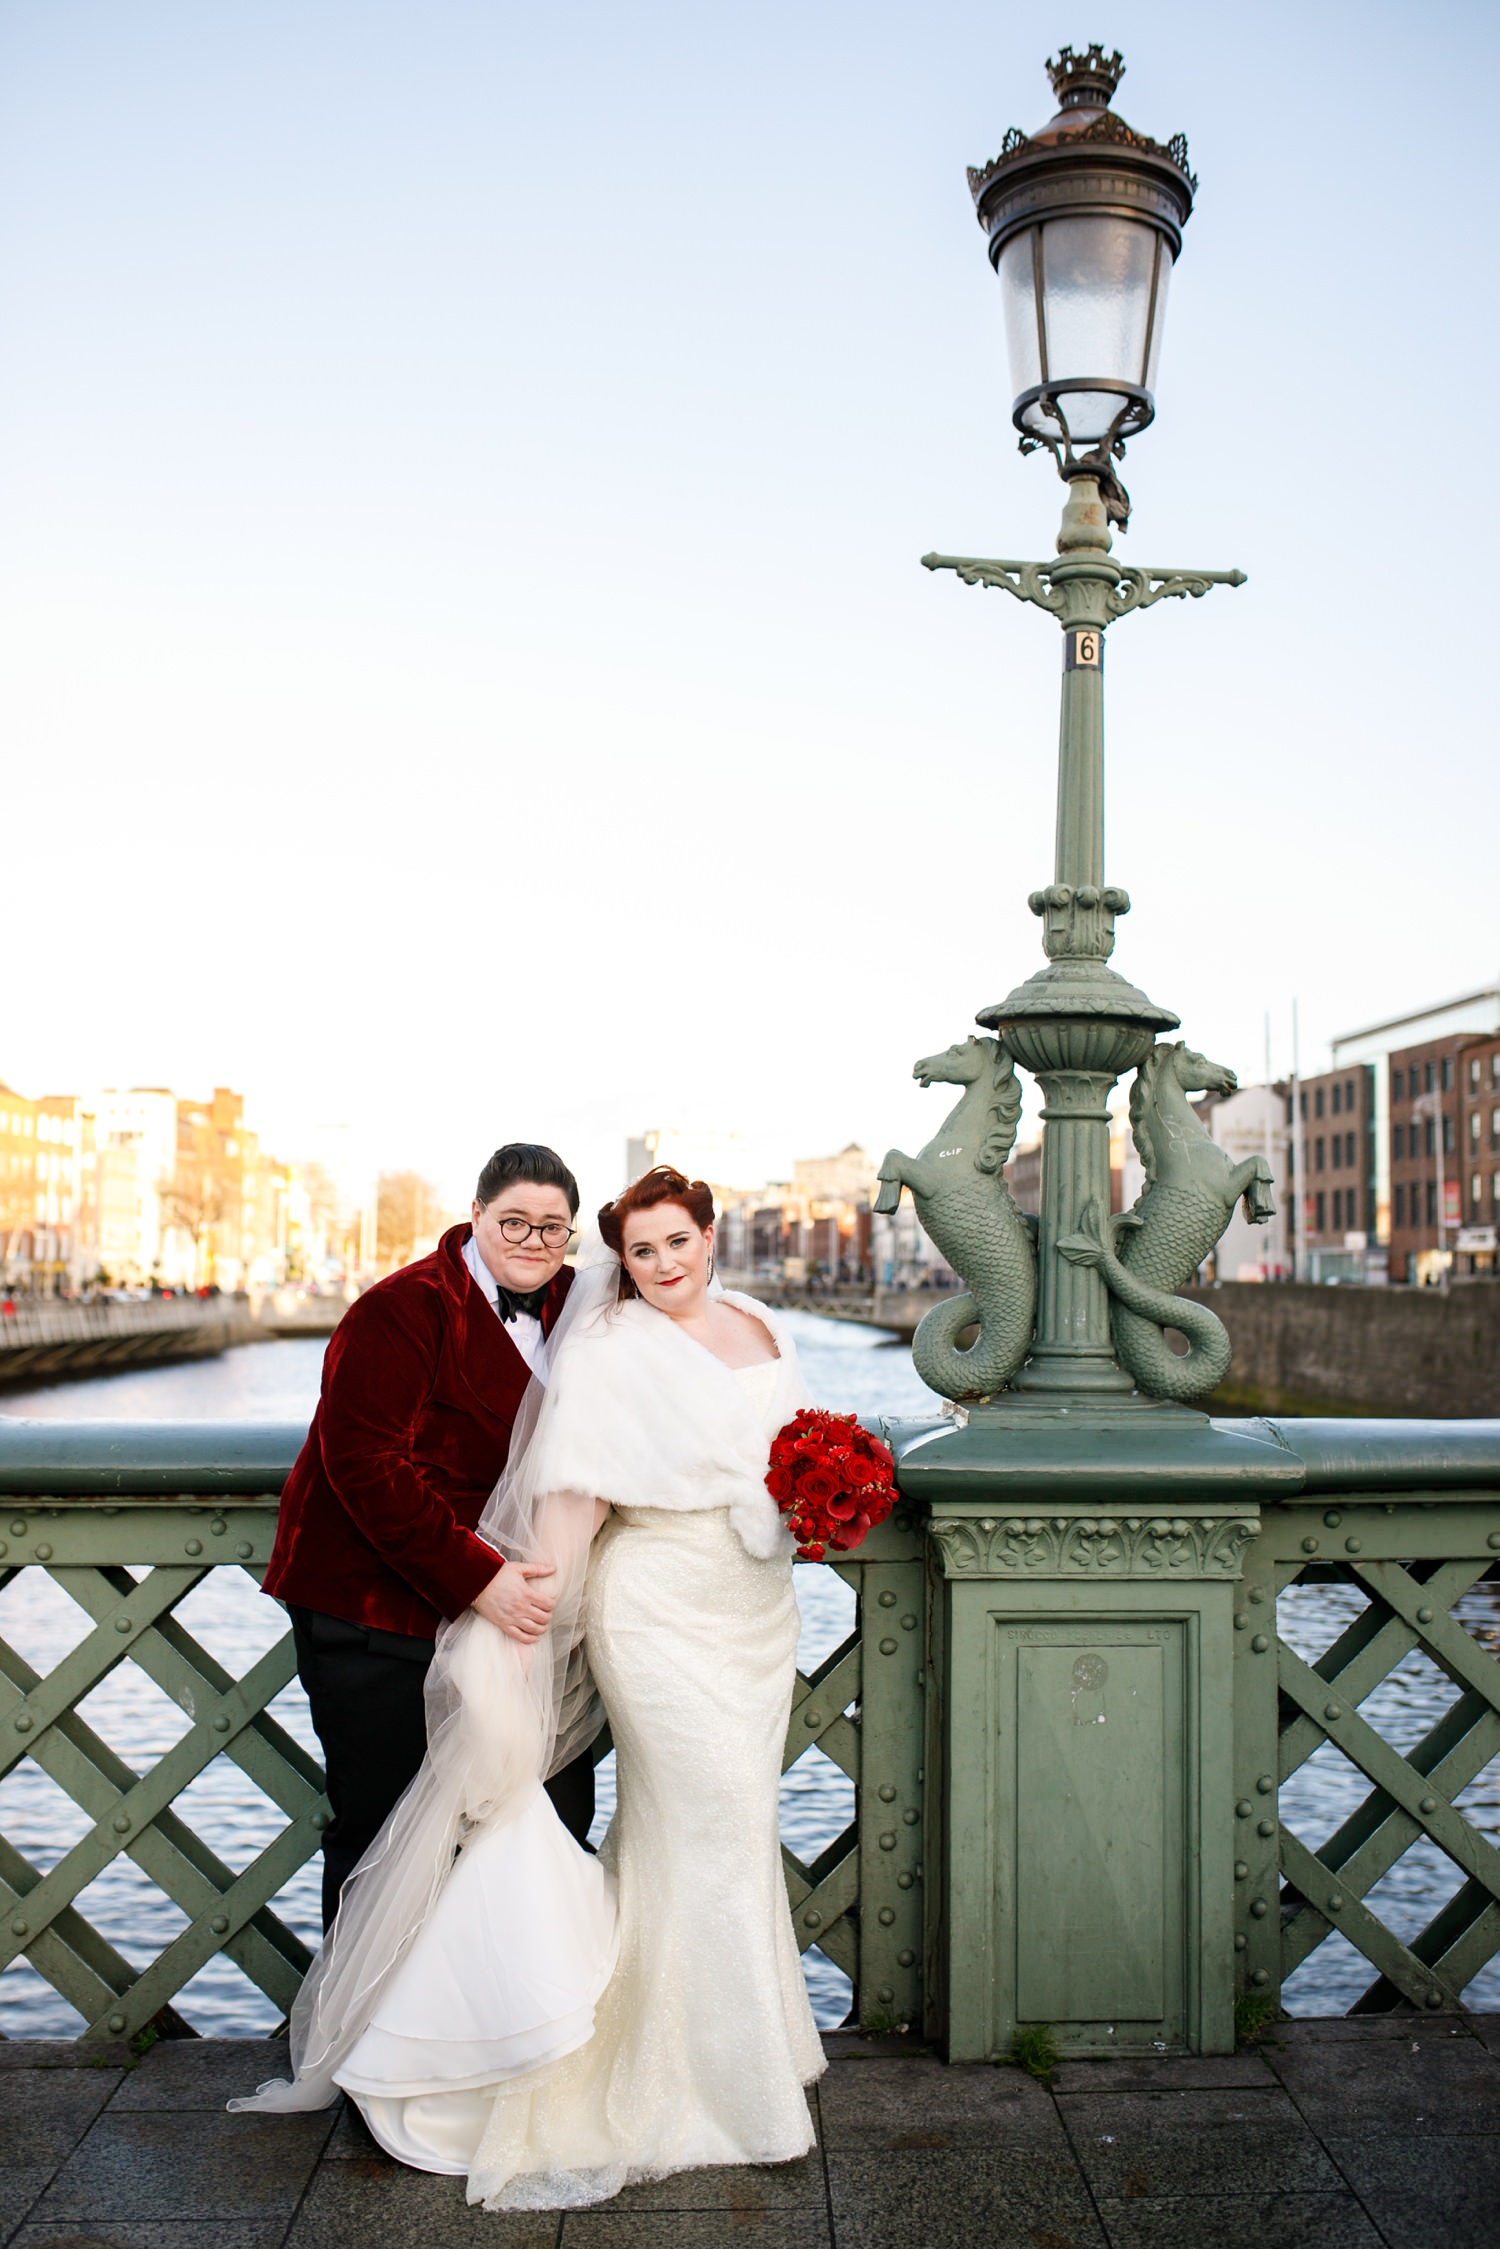 Elisha-Clarke-Photography-Dublin-City-Wedding_00280.jpg